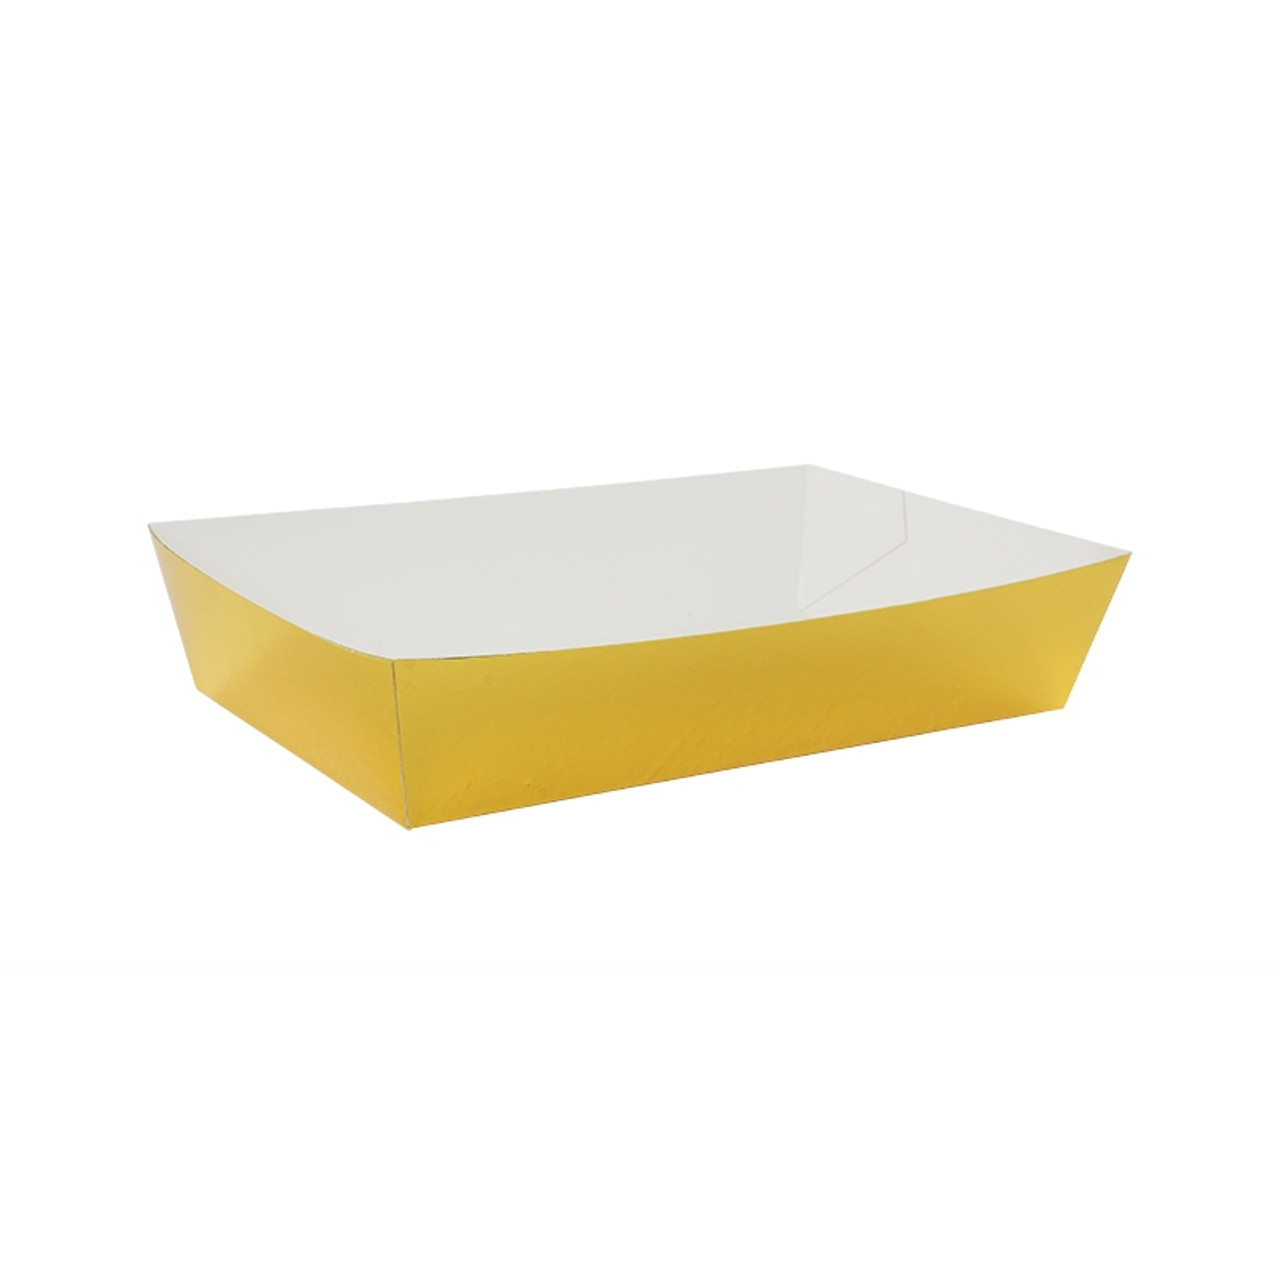 Lunch Trays Metallic Gold | The Paper Party Collection